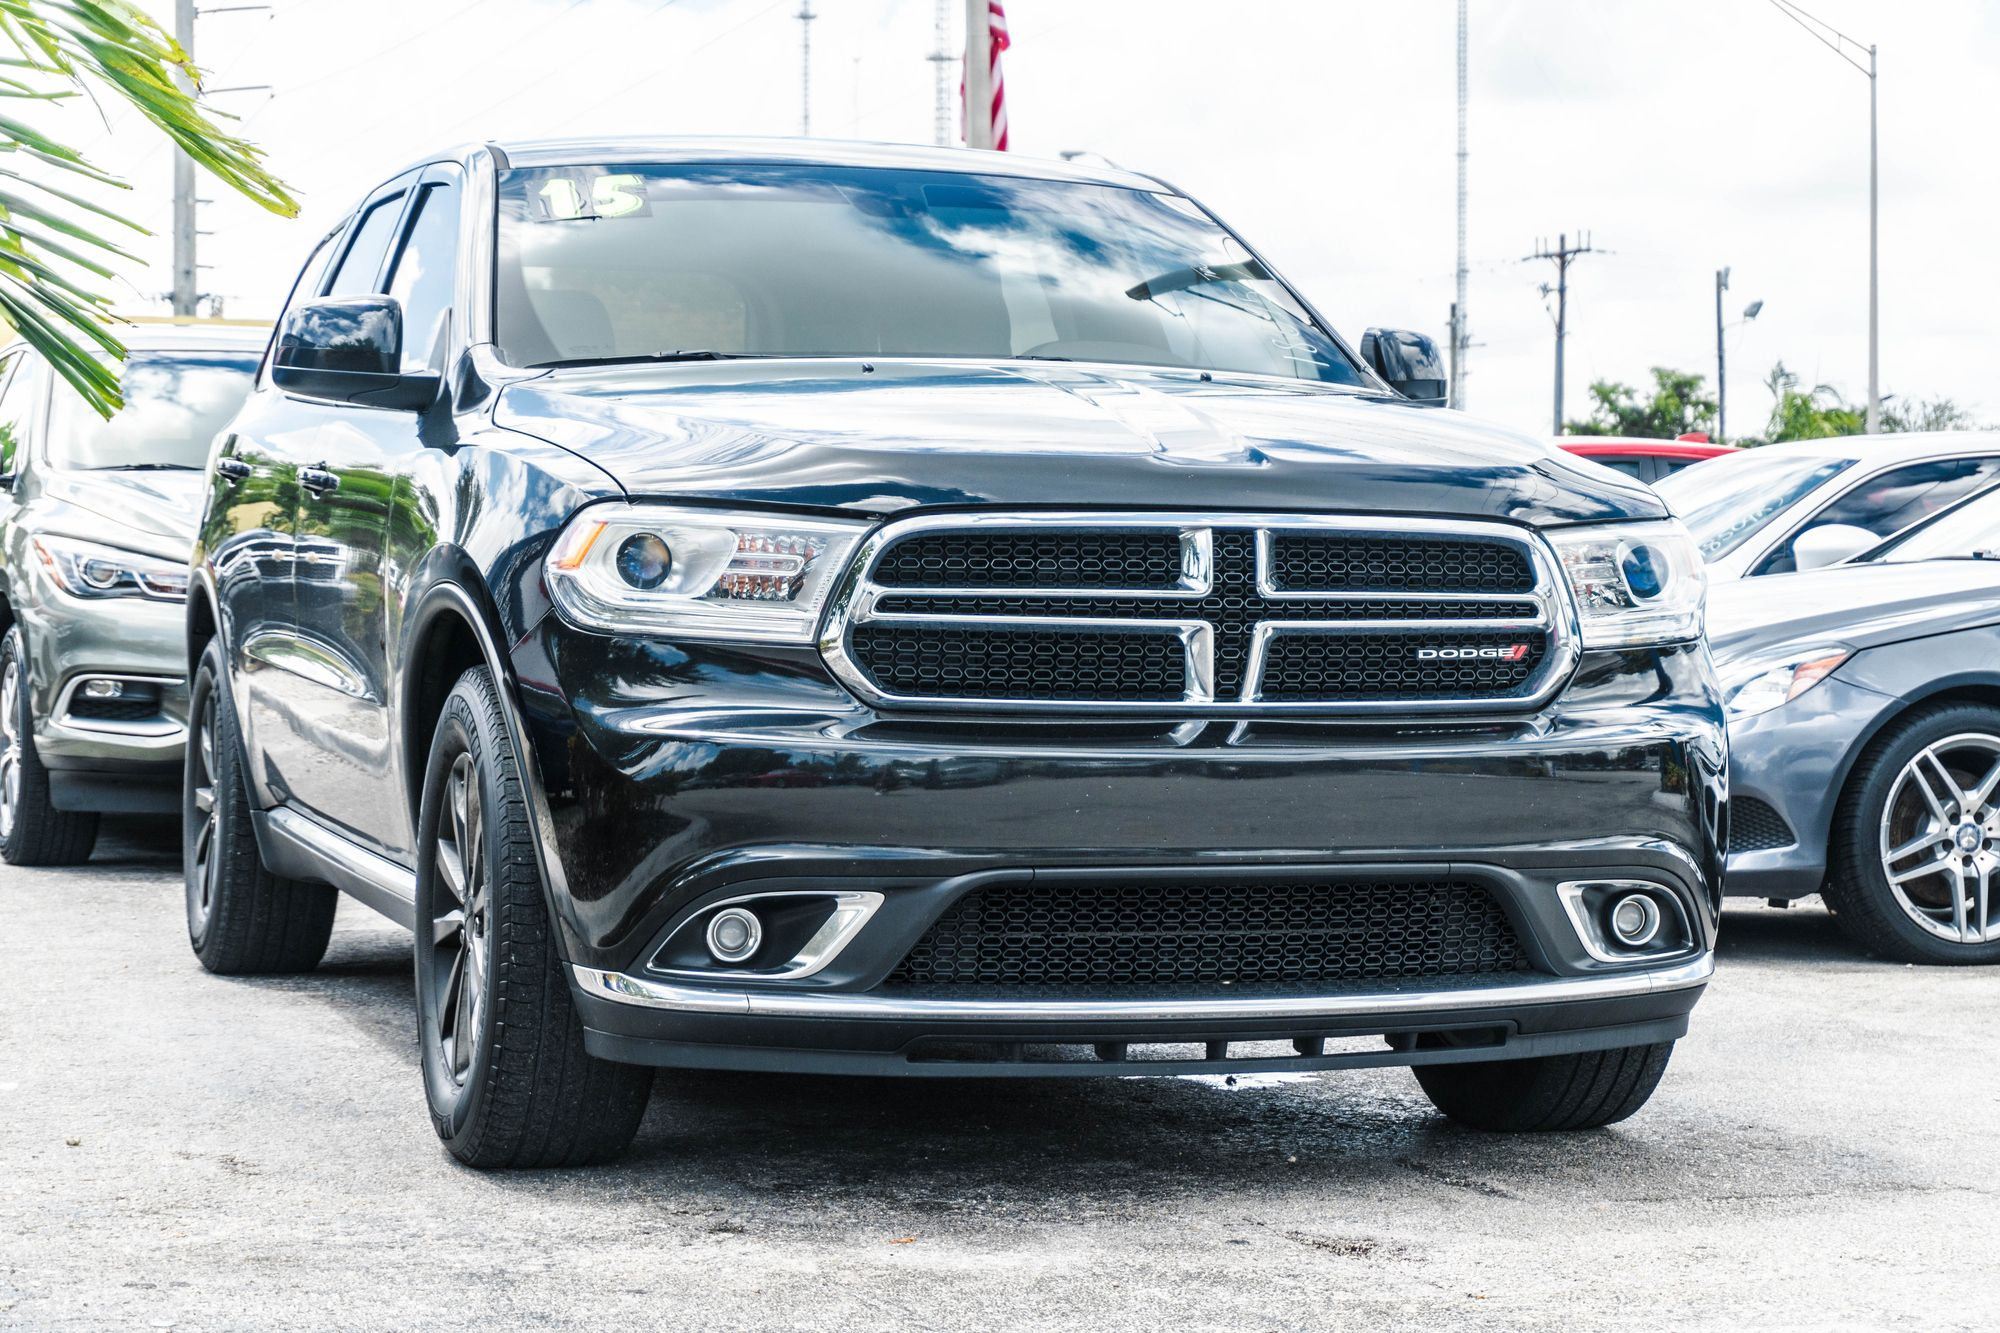 What Do You Think About This 2015 Dodge Durango Sxt Or Not Dodge Durango Dodgedurango Dodgedurangosxt Dodgelif Cars For Sale Used Cars Fort Lauderdale